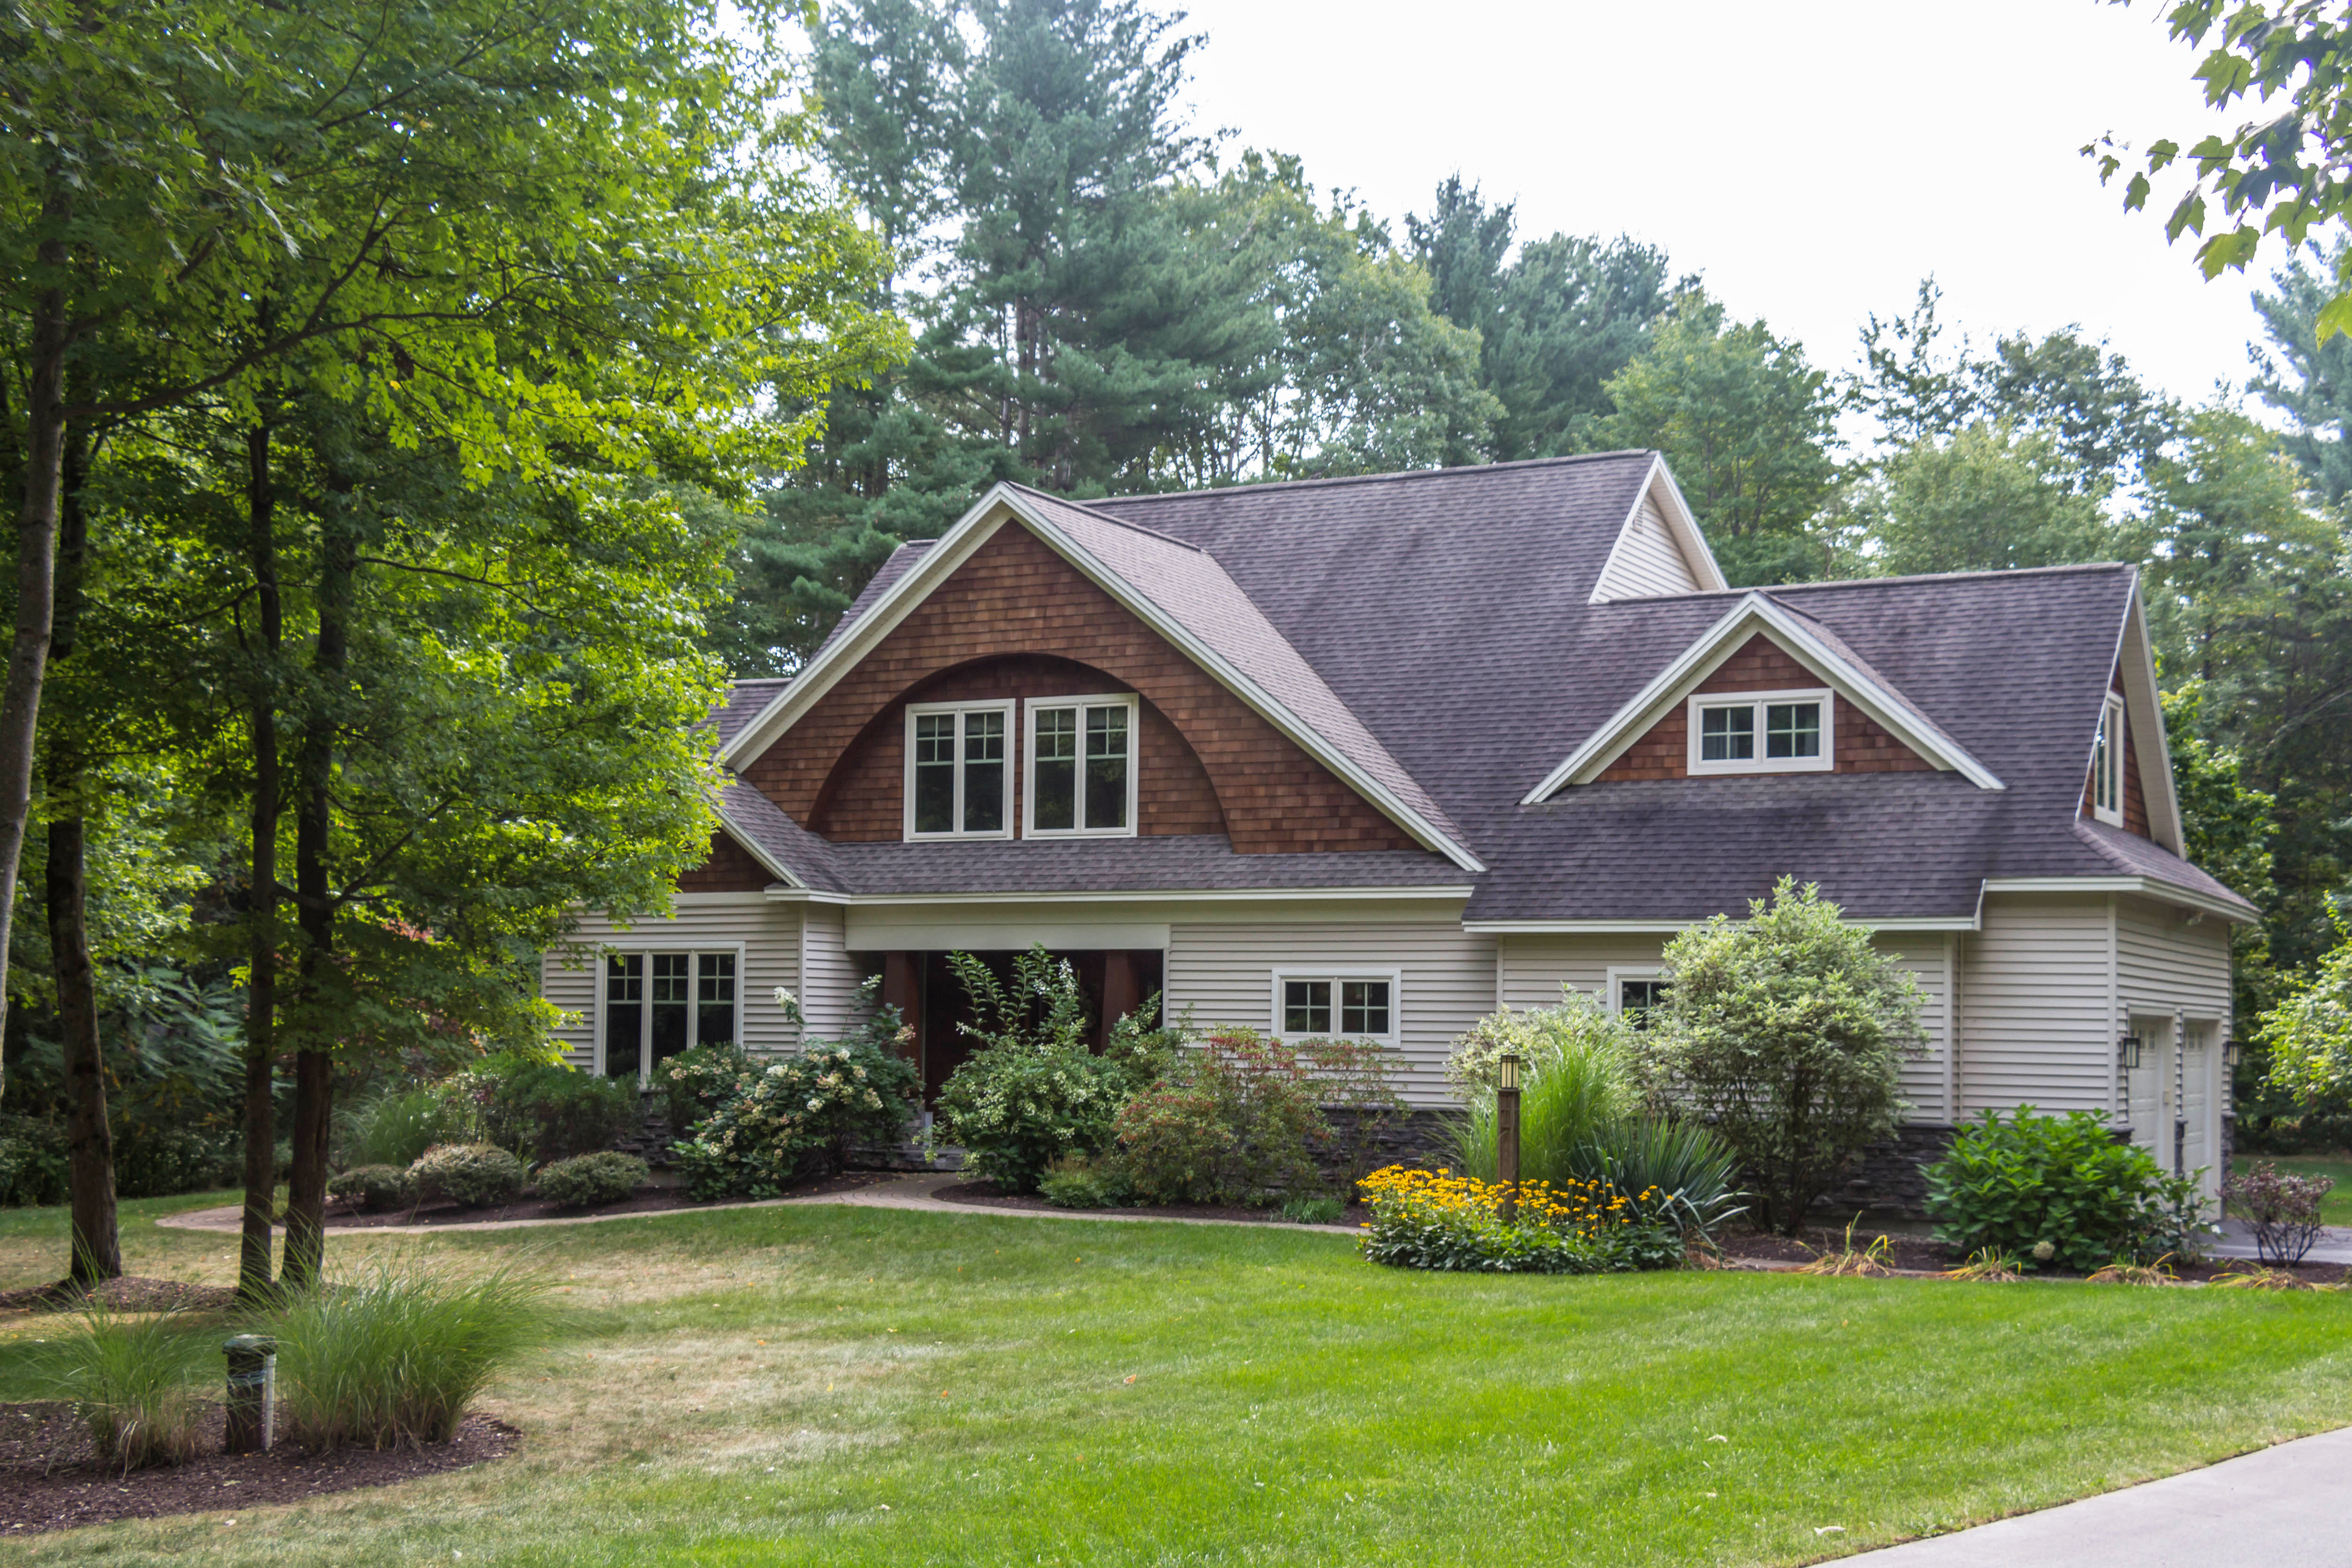 35 Brookstone Dr, Greenfield Center, NY 12833